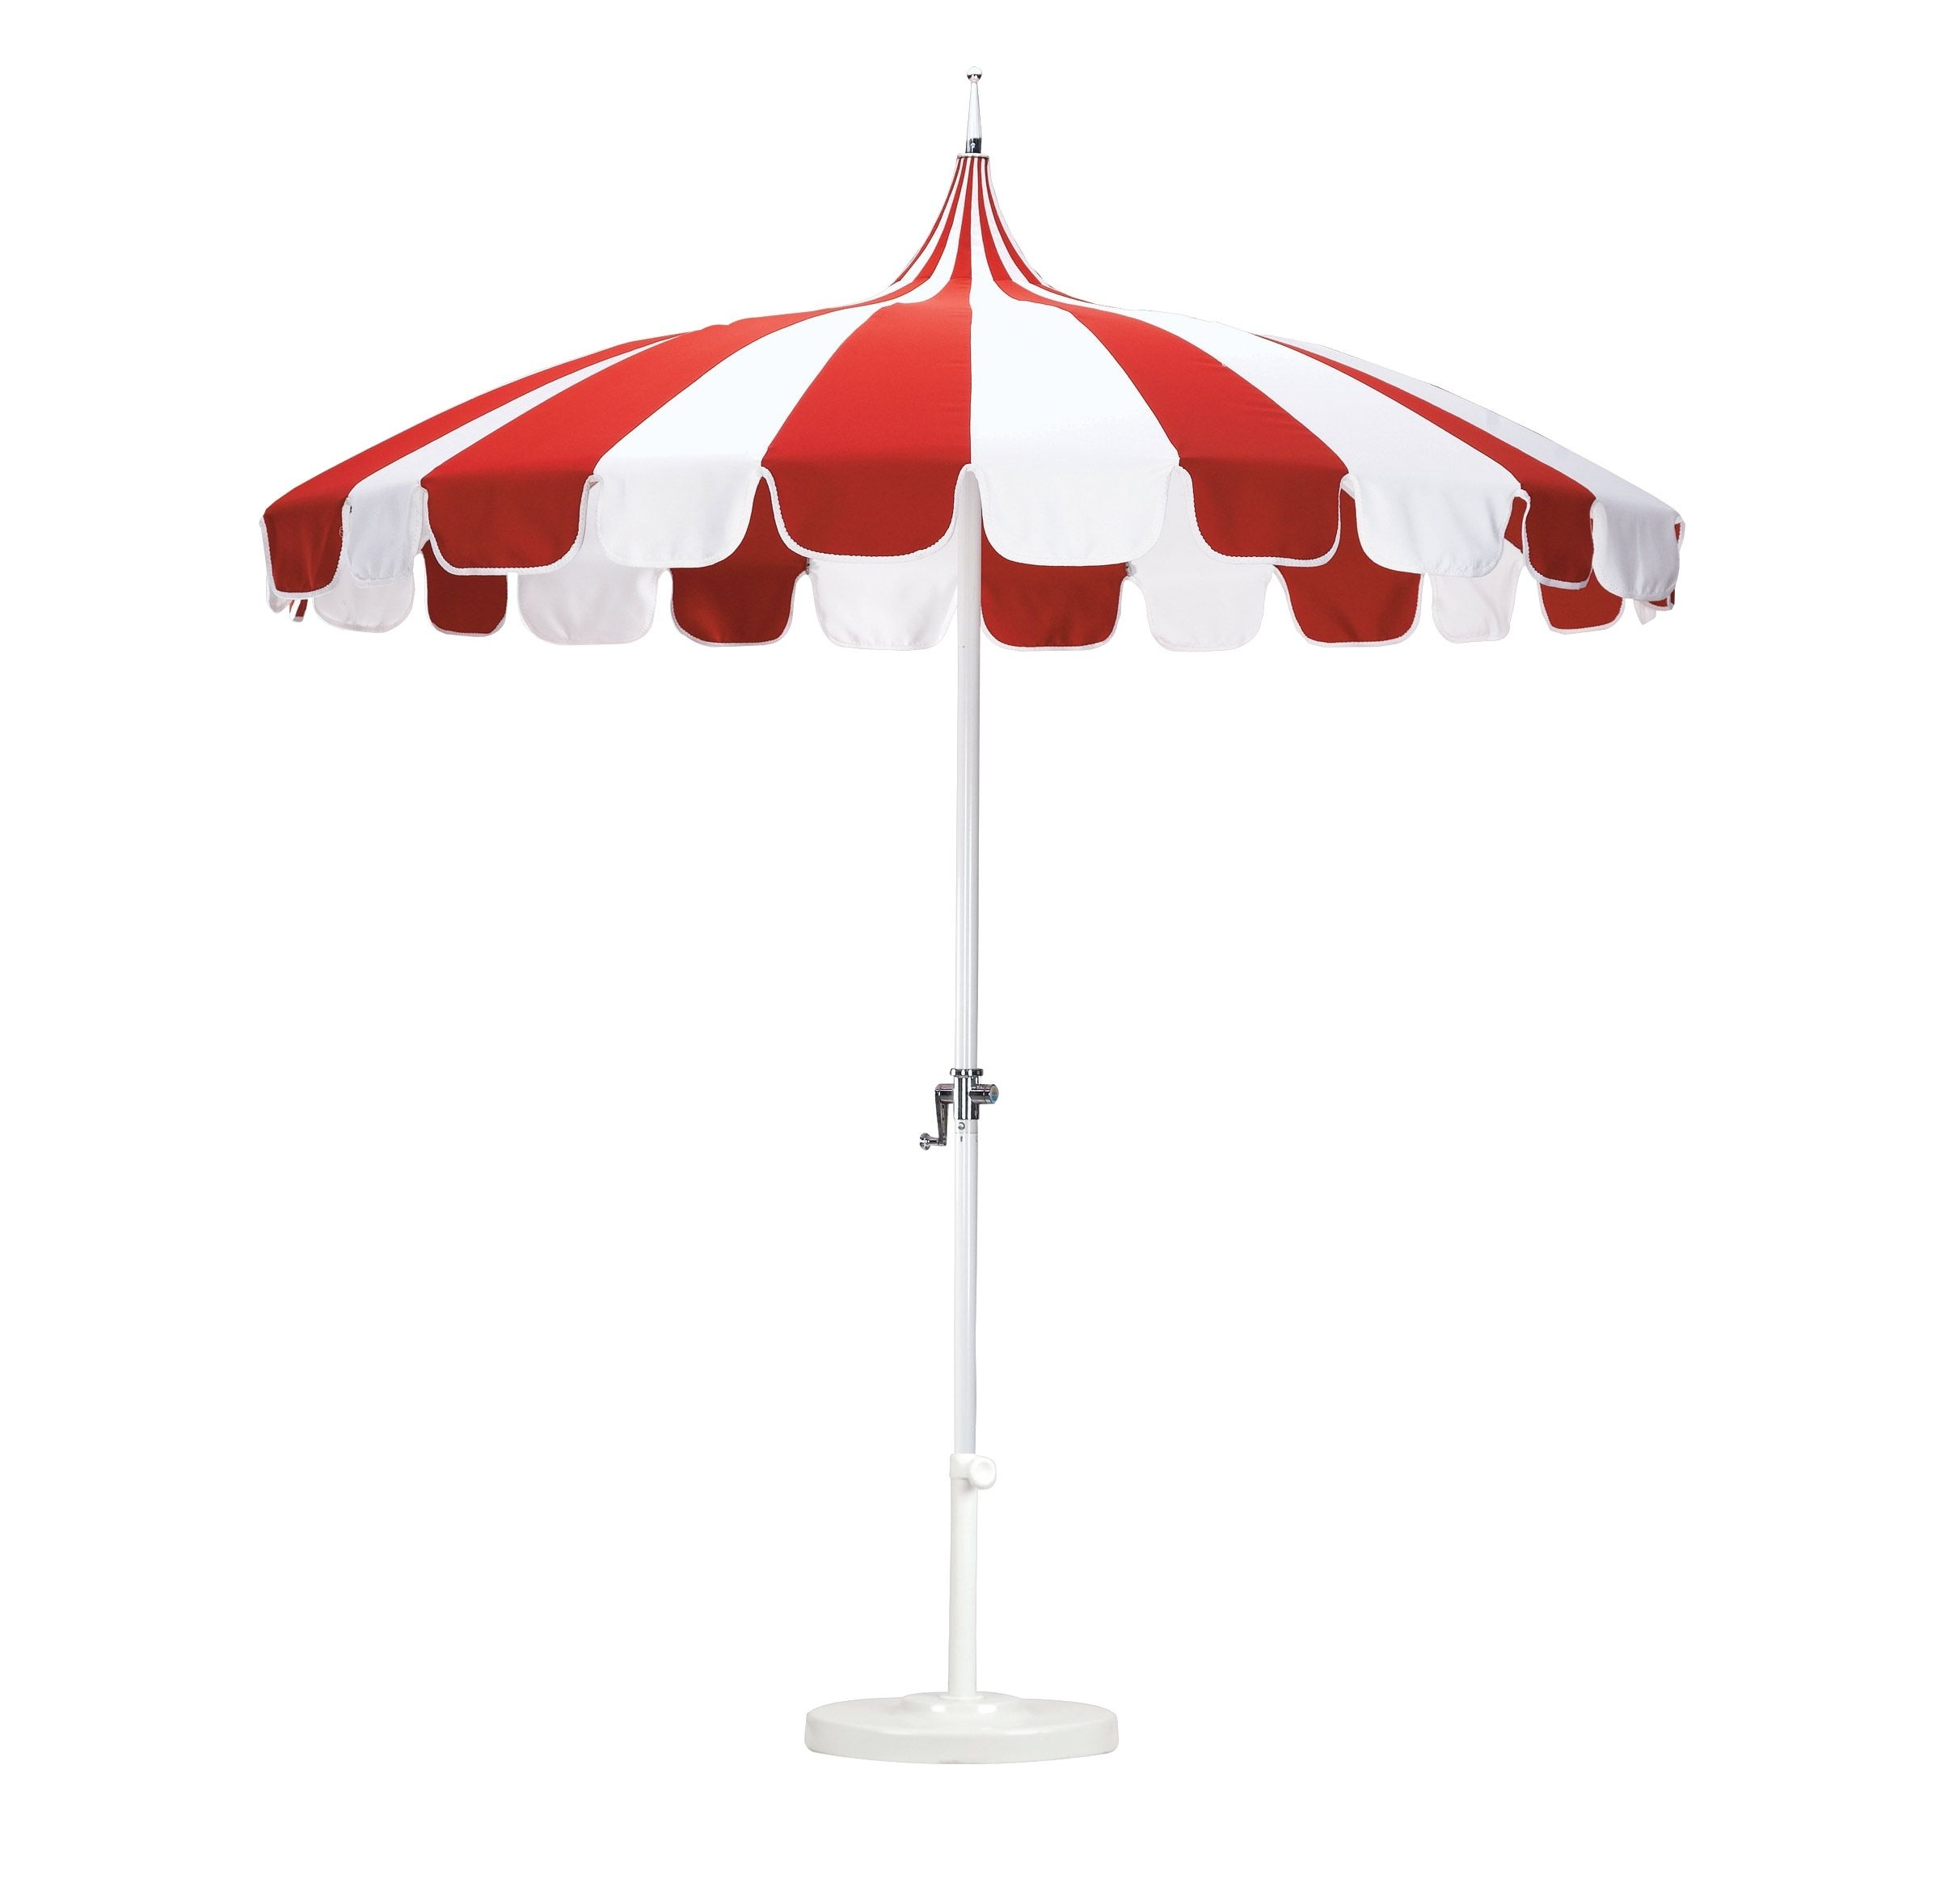 Popular Sunbrella Patio Umbrella Look More At Http://besthomezone Intended For Sunbrella Patio Umbrellas (View 9 of 20)